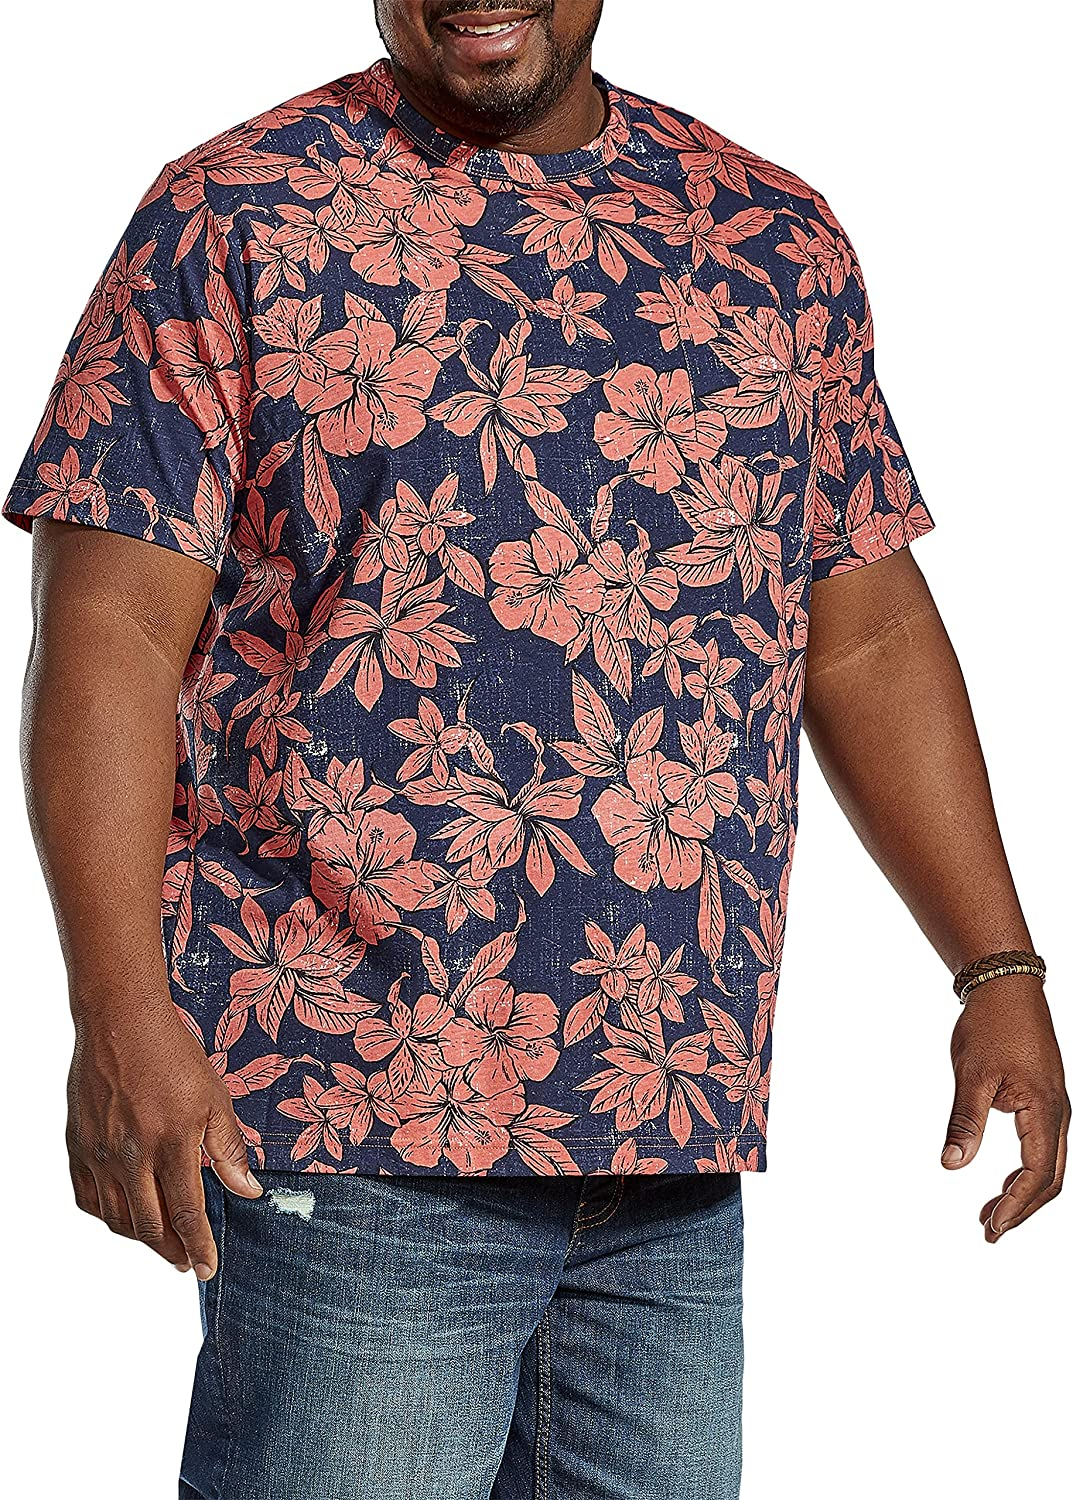 Harbor Bay by DXL Big and Tall Floral Print Pocket Tee, Blue Multi